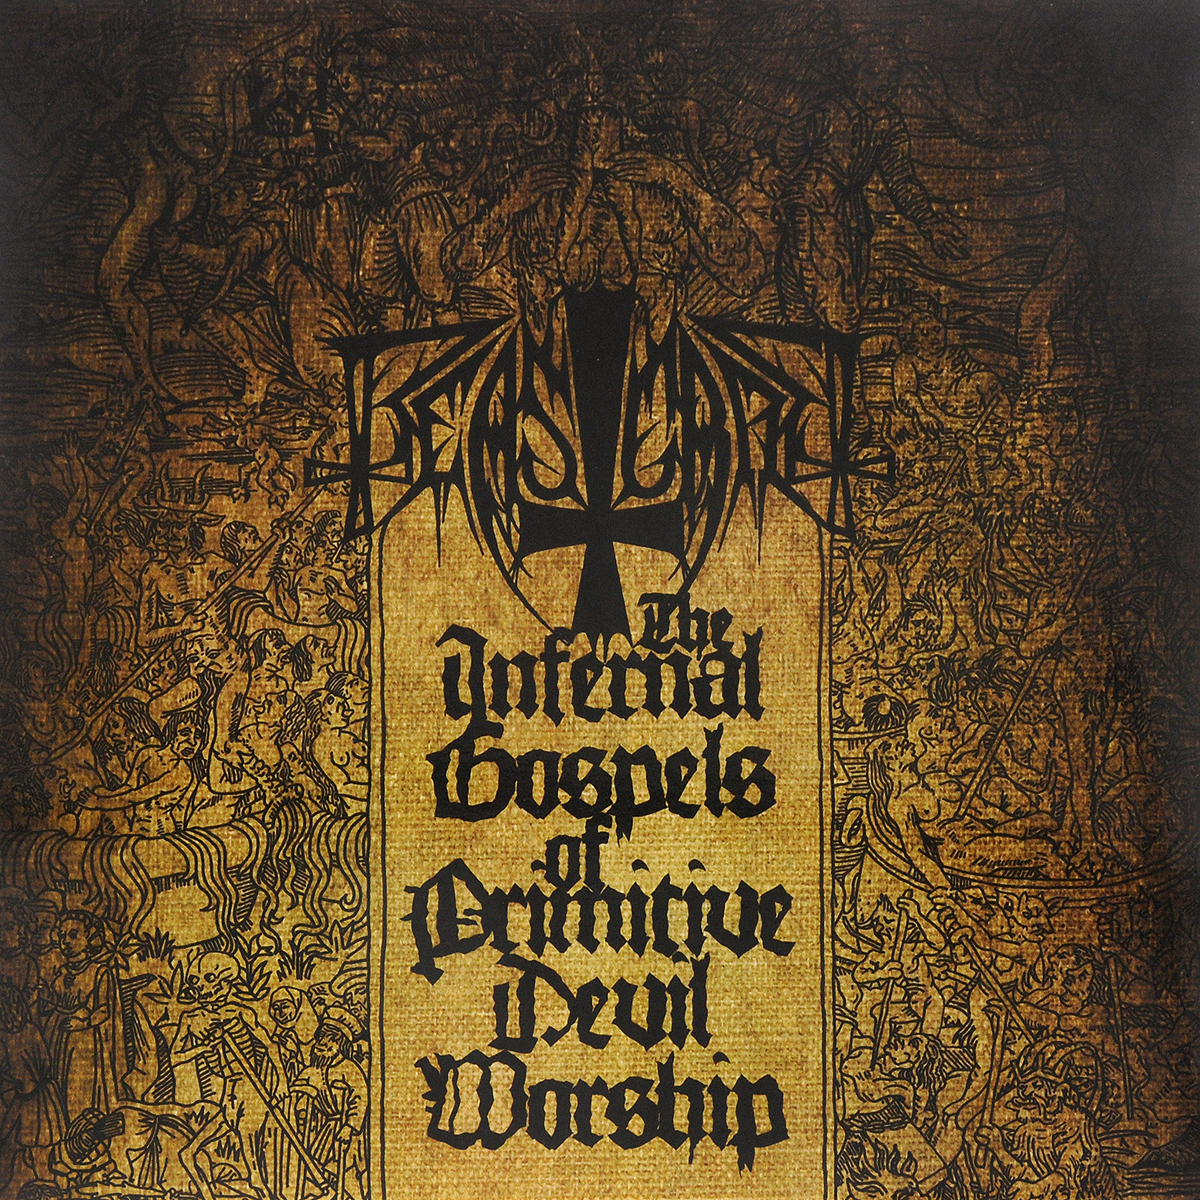 Beastcraft Beastcraft. The Infernal Gospels Of Primitive Devil Worship (LP) белый парик урсулы uni